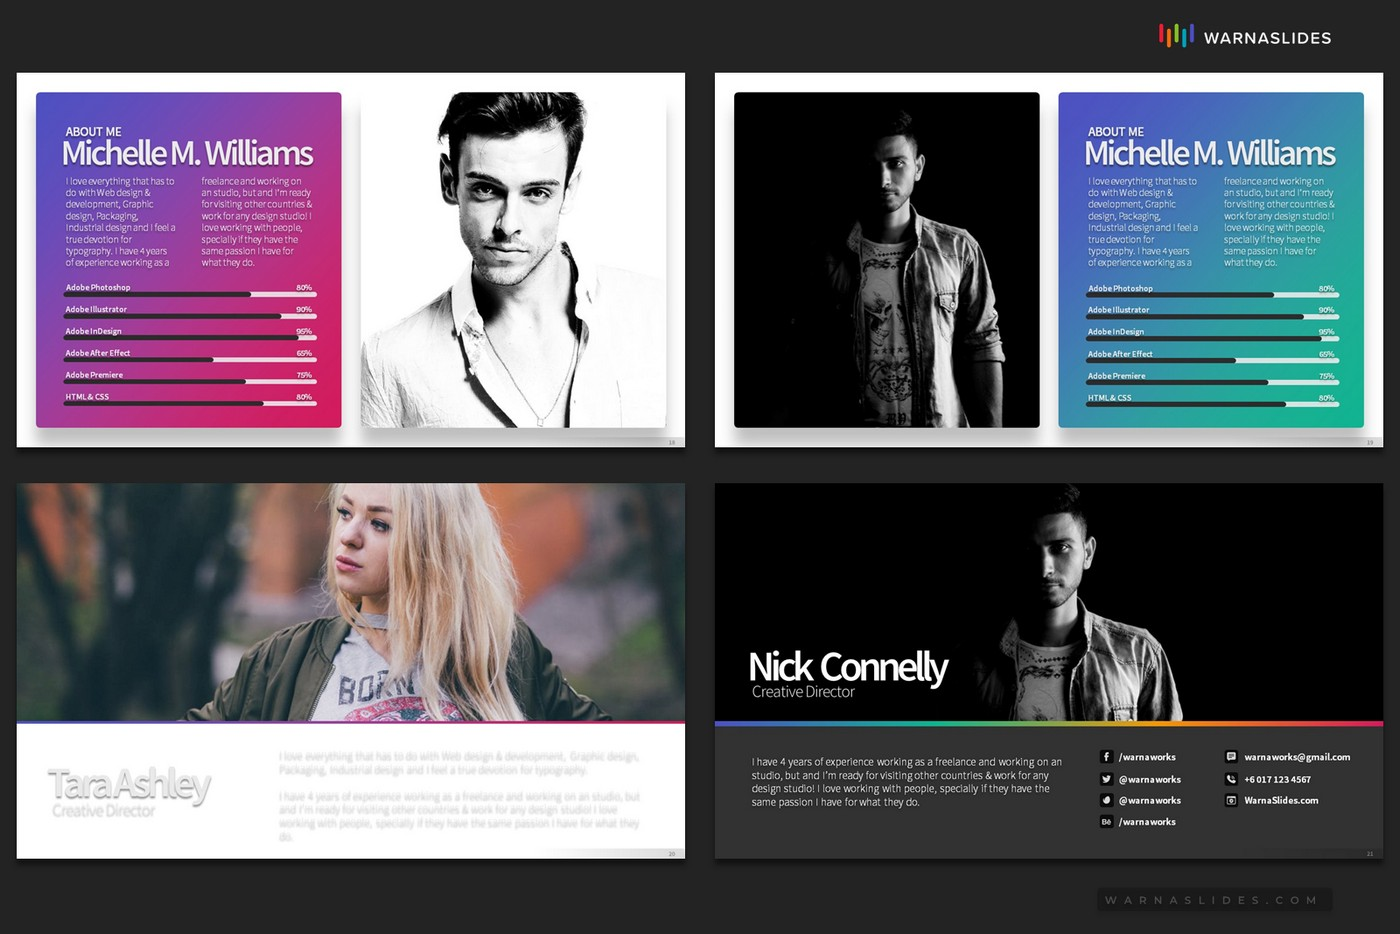 About-Me-Resume-Profile-PowerPoint-Template-2020-Skill-Expertise-for-Business-Pitch-Deck-Professional-Creative-Presentation-by-Warna-Slides-010